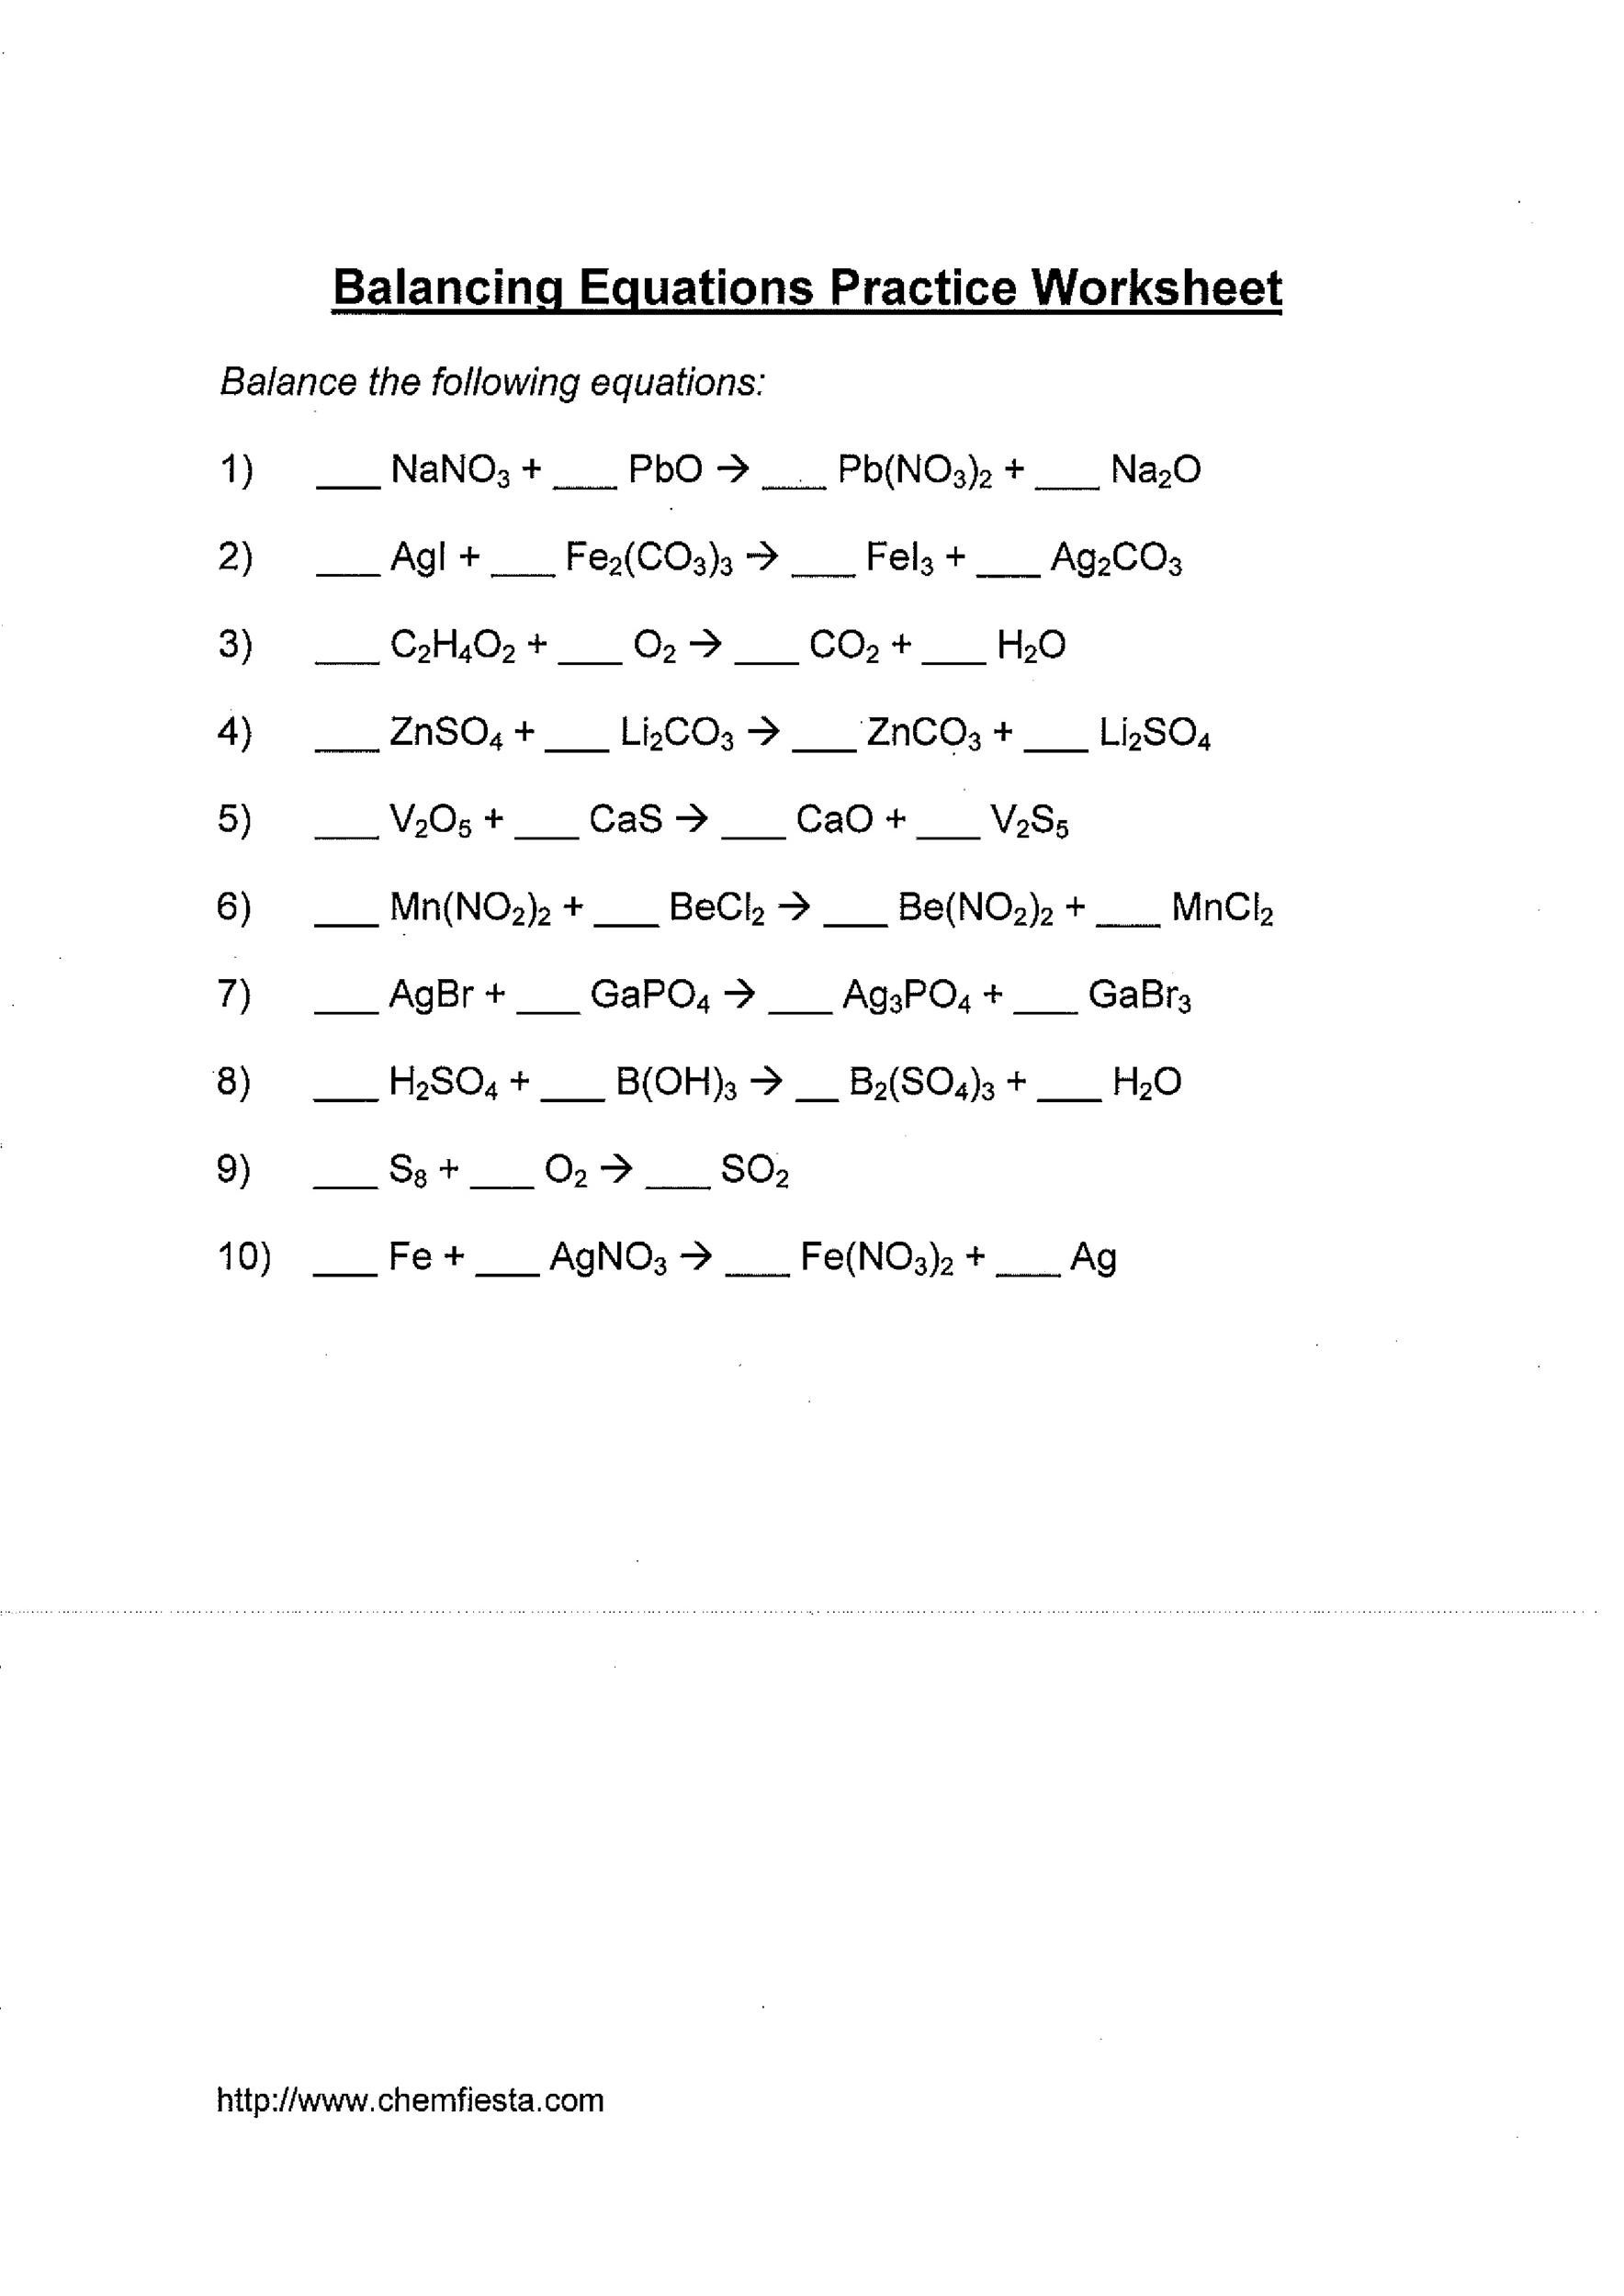 49 Balancing Chemical Equations Worksheets With Answers. Free Balancing Equations 19. Worksheet. Balancing Equations Worksheet Answer Key At Mspartners.co